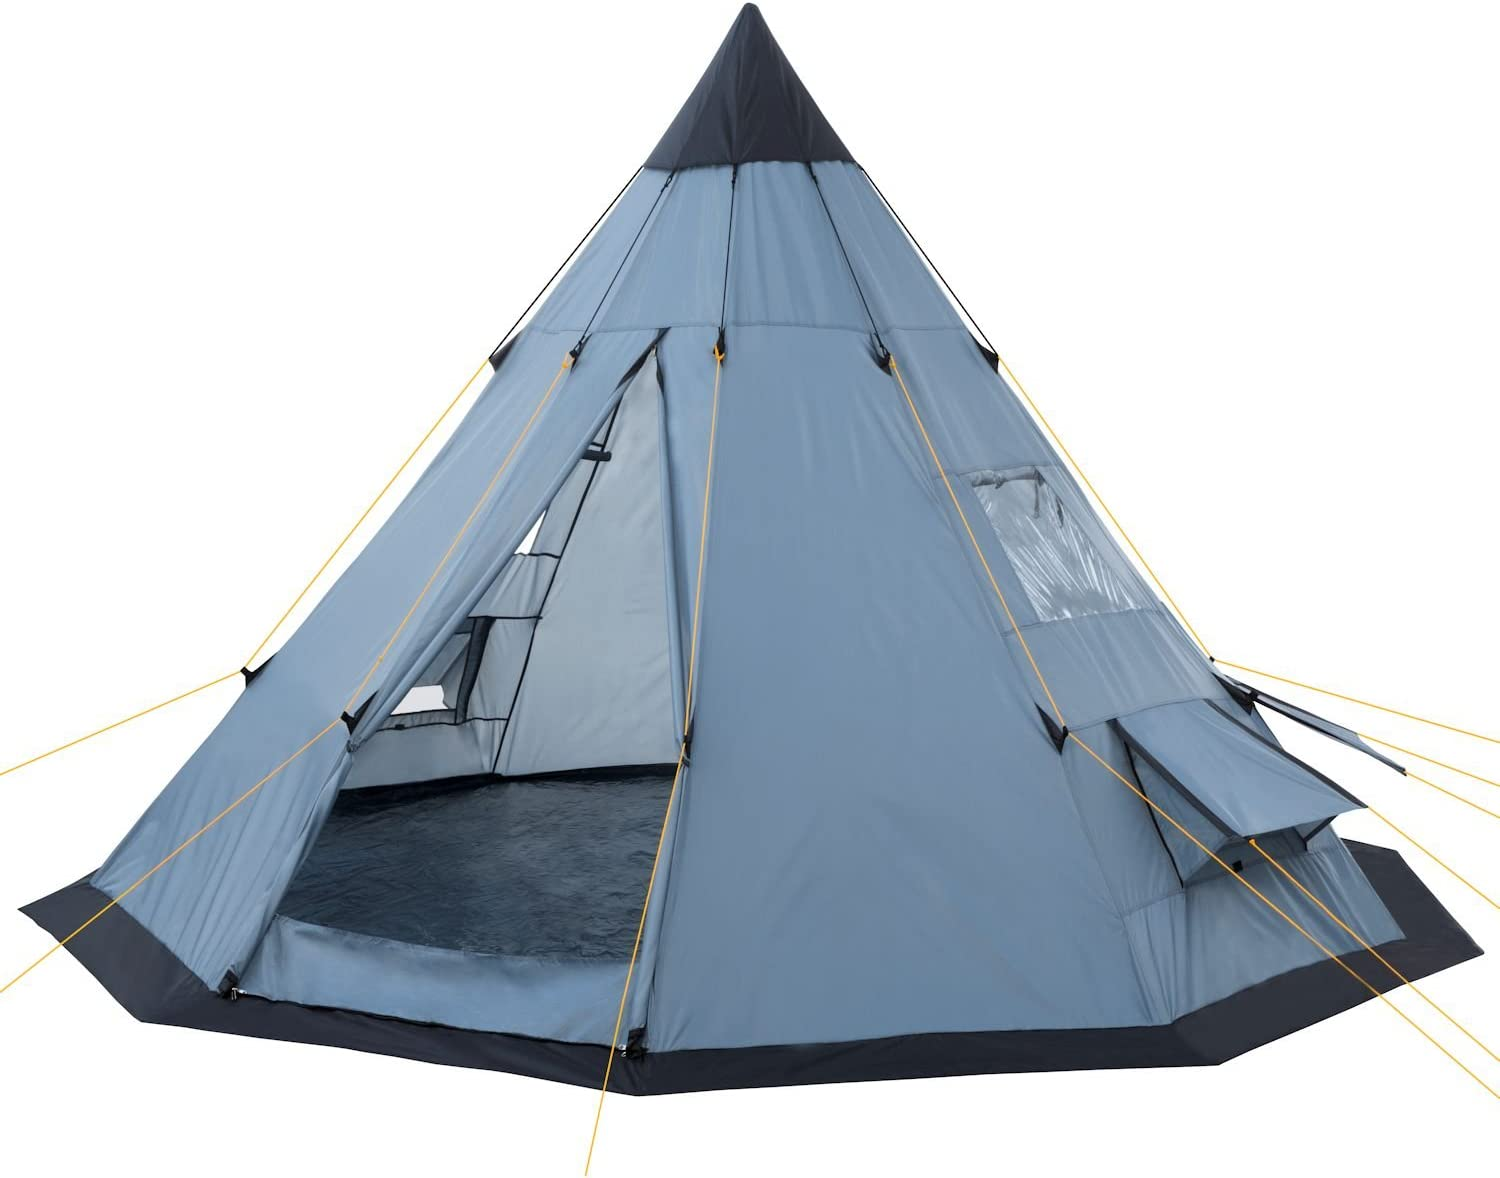 CampFeuer® Tipi Teepee Tent, greyblue